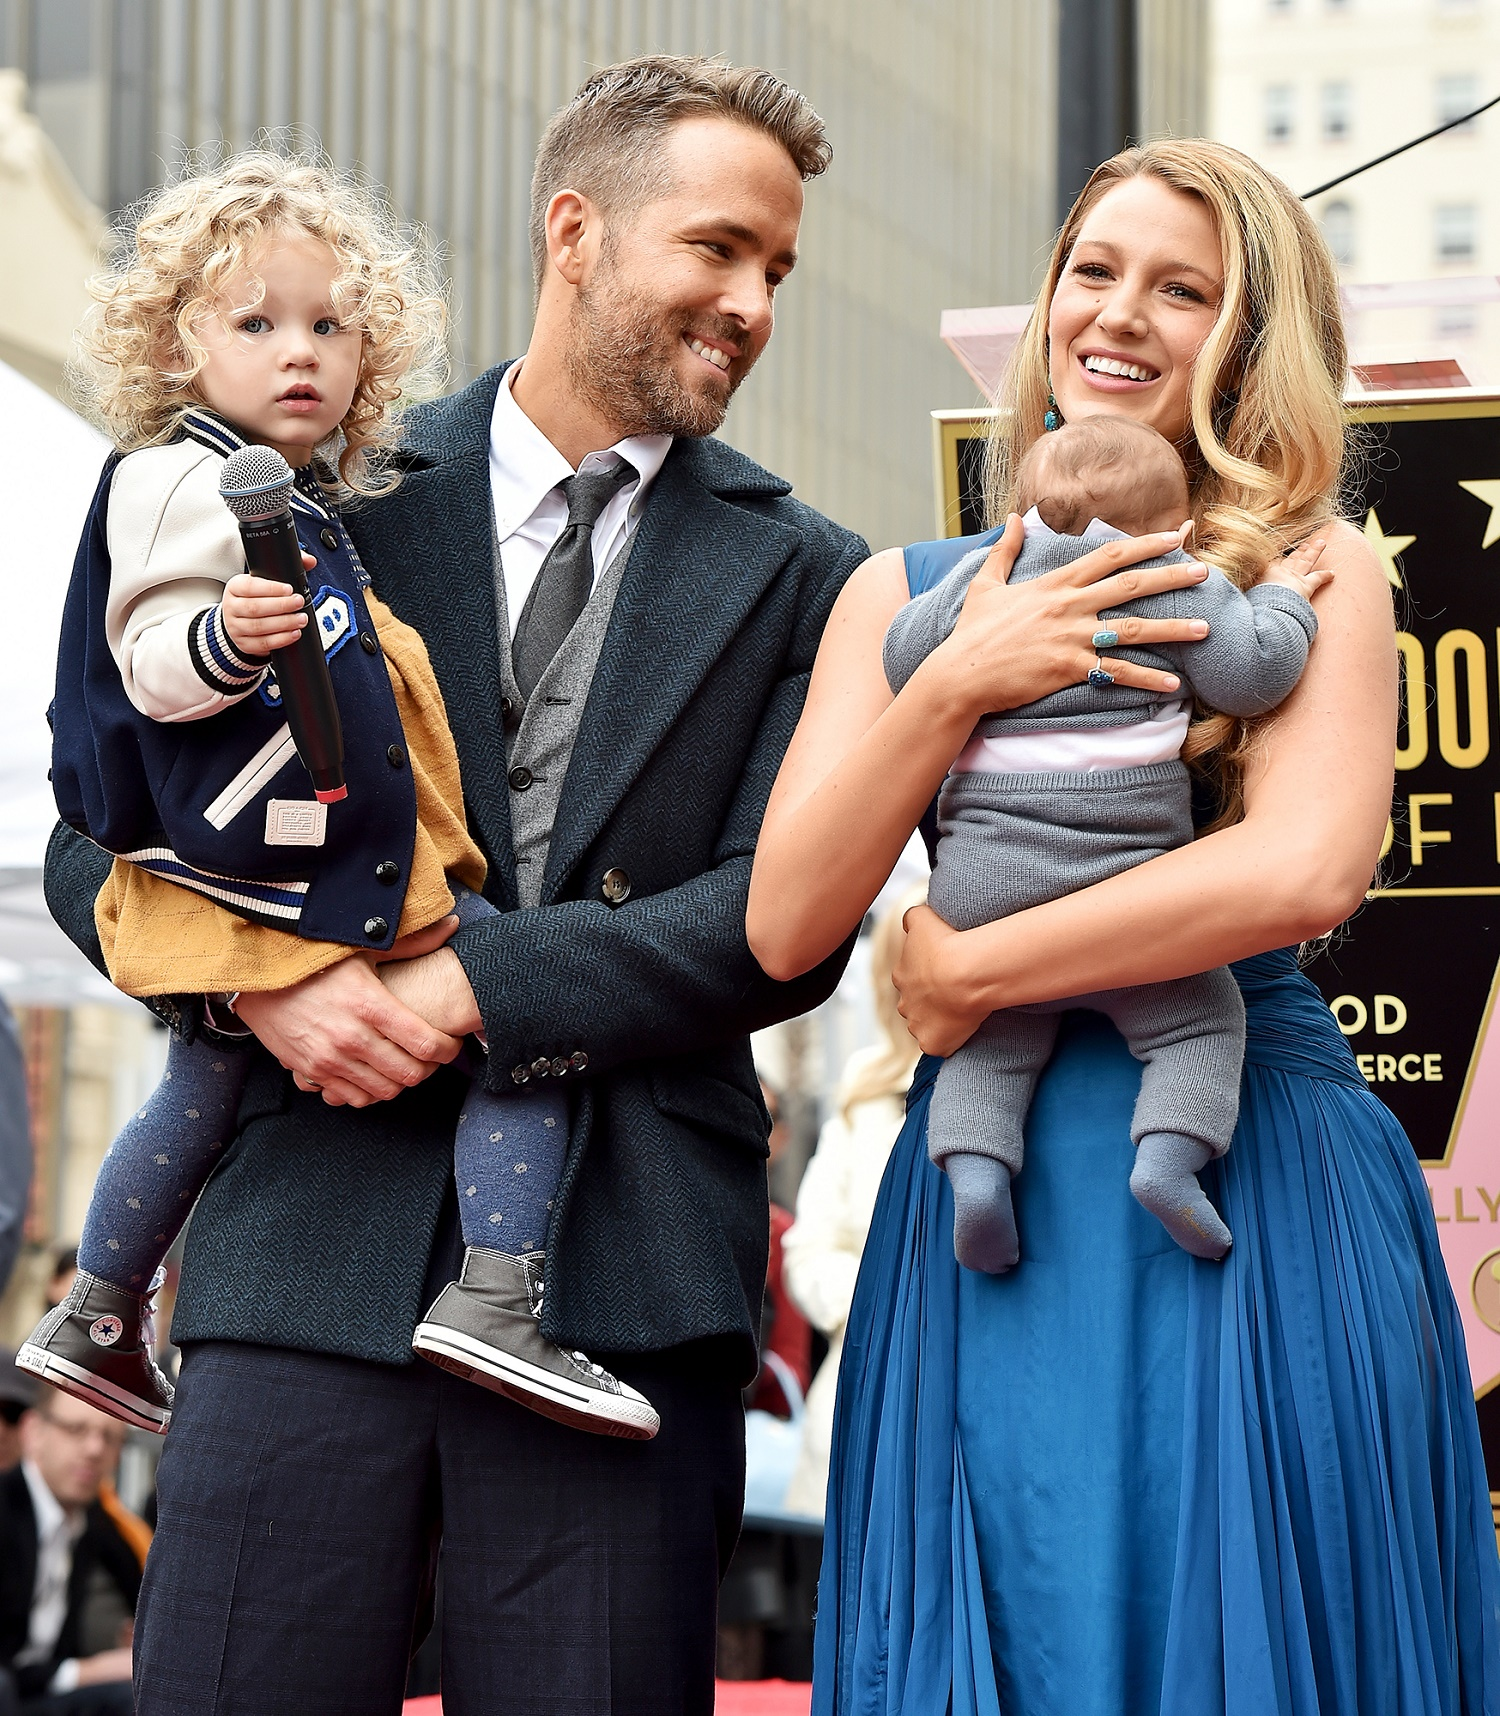 Blake Lively, Ryan Reynolds With Their Kids